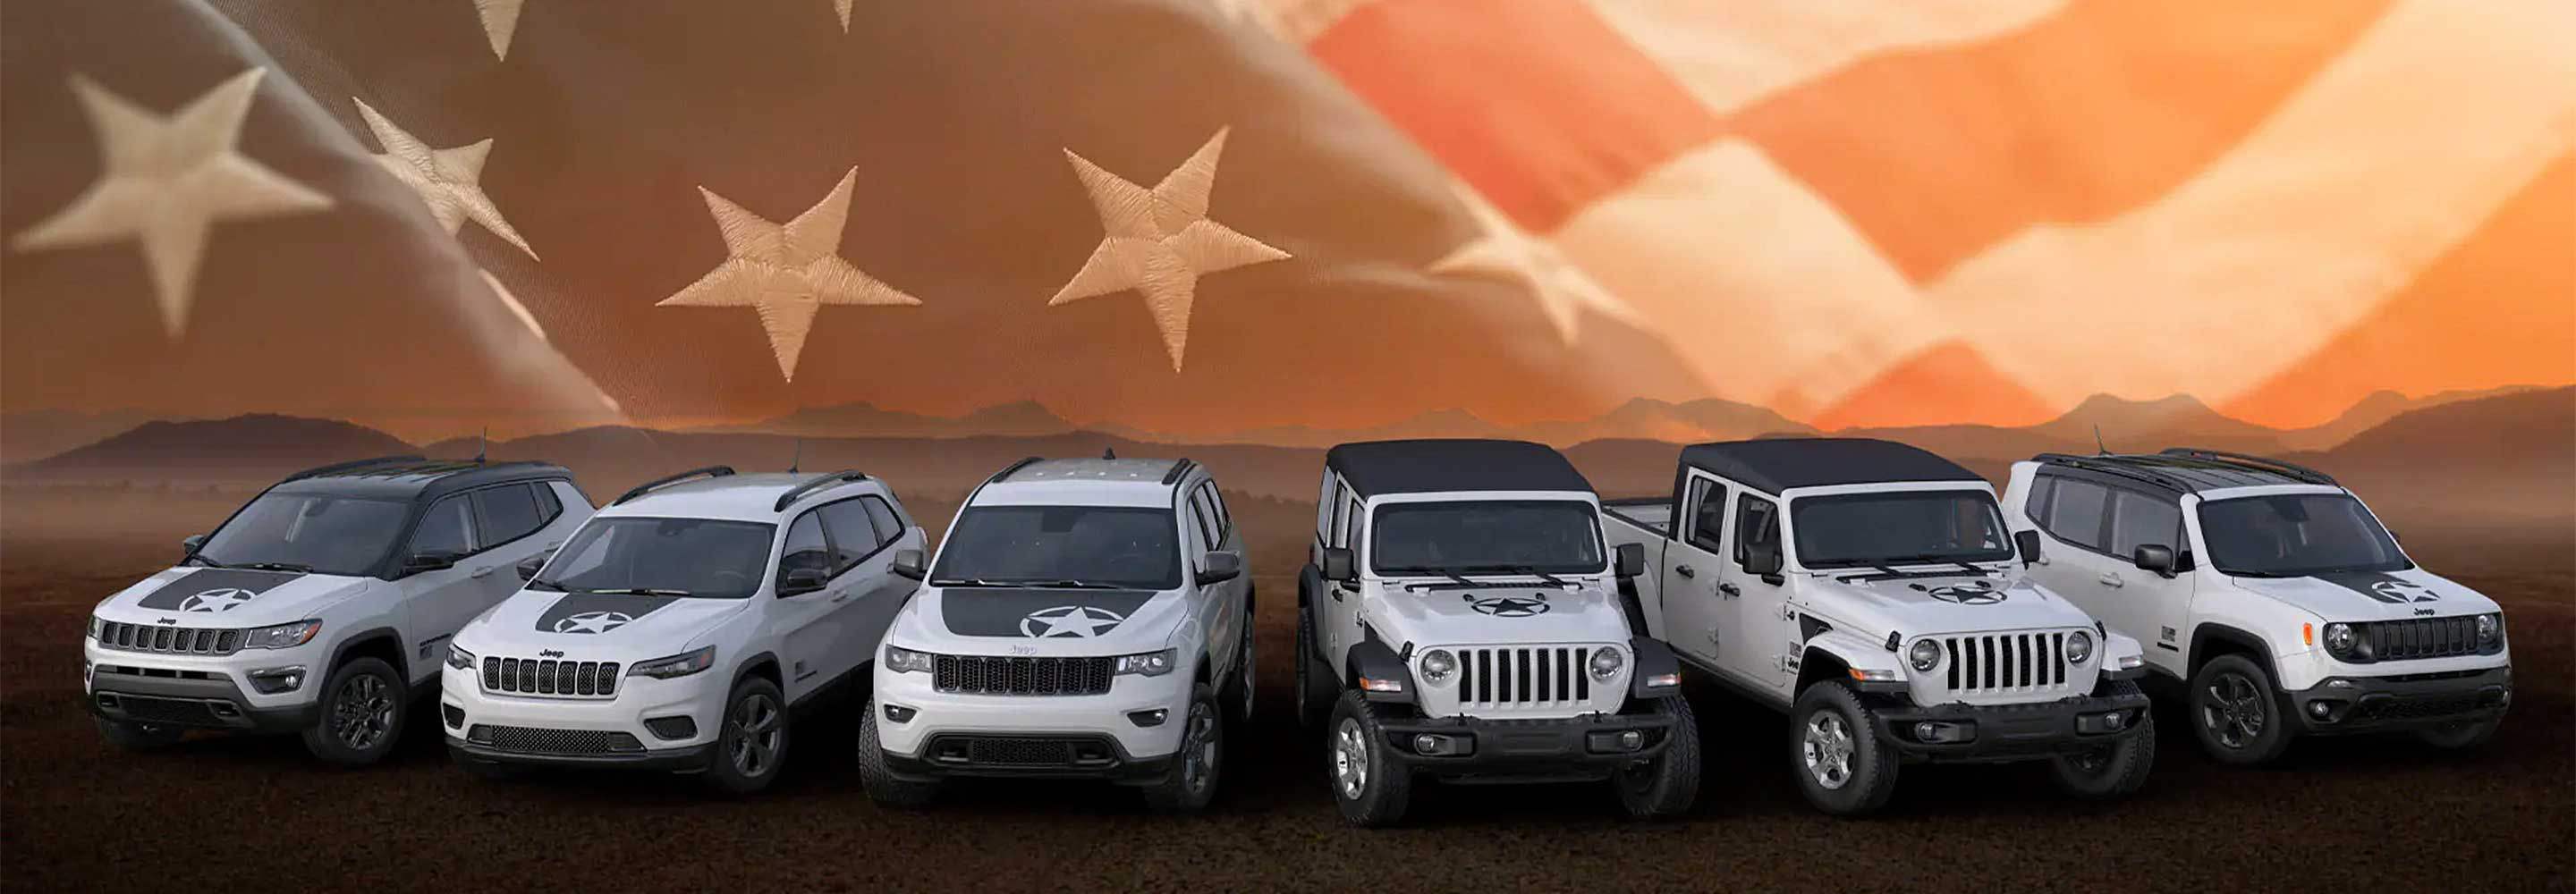 Charge Your New Jeep Wrangler 4xe on the Trail